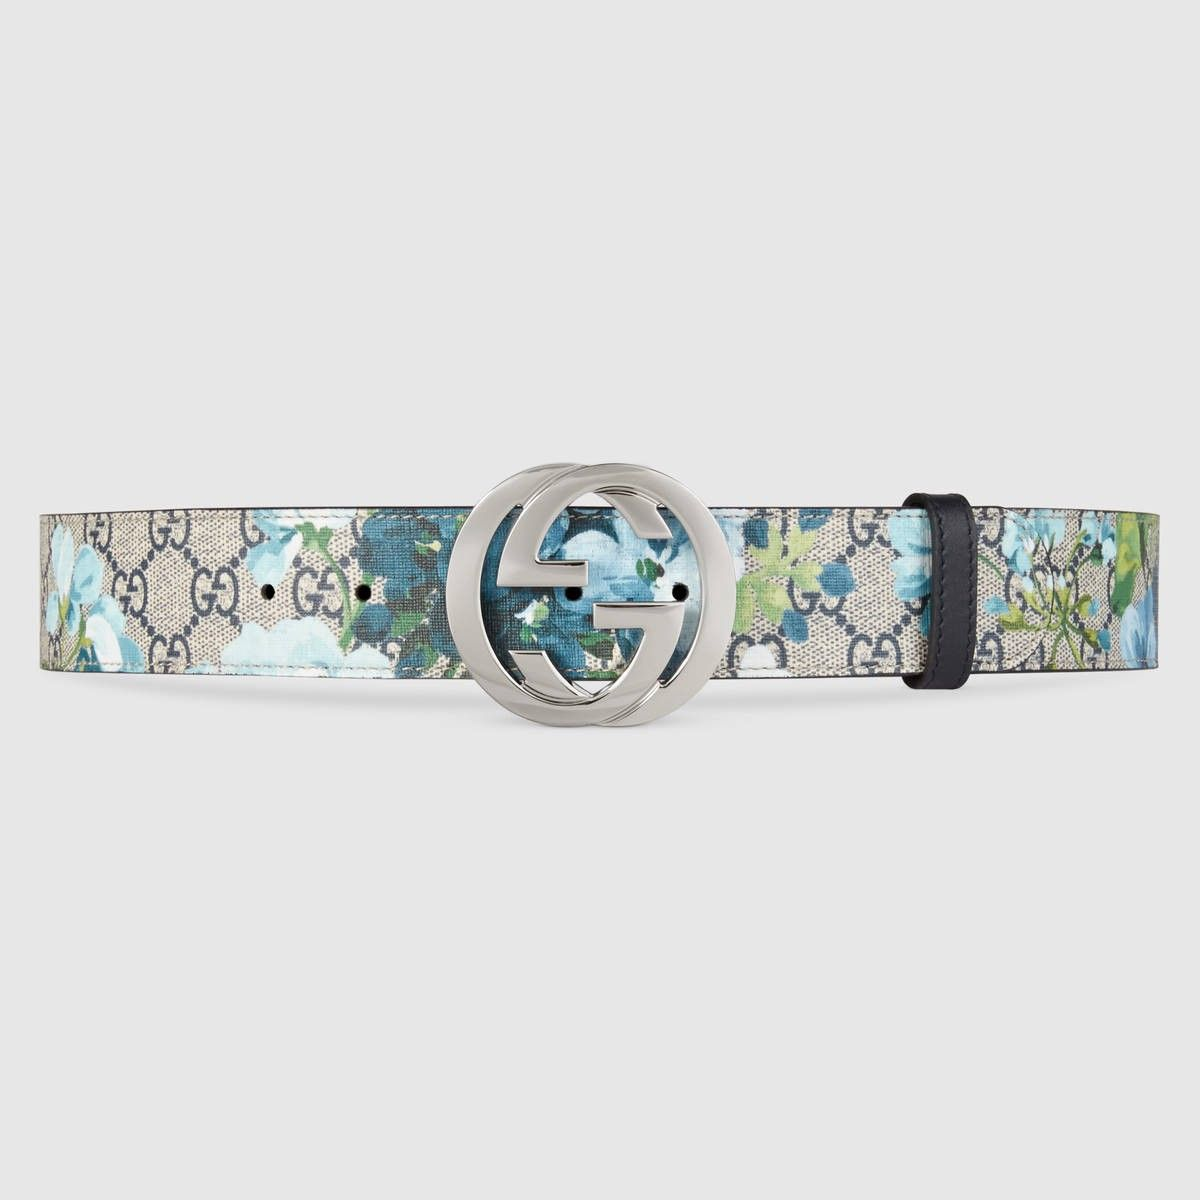 ea22314e3b1 GUCCI GG Blooms belt with G buckle - blue Blooms print.  gucci ...